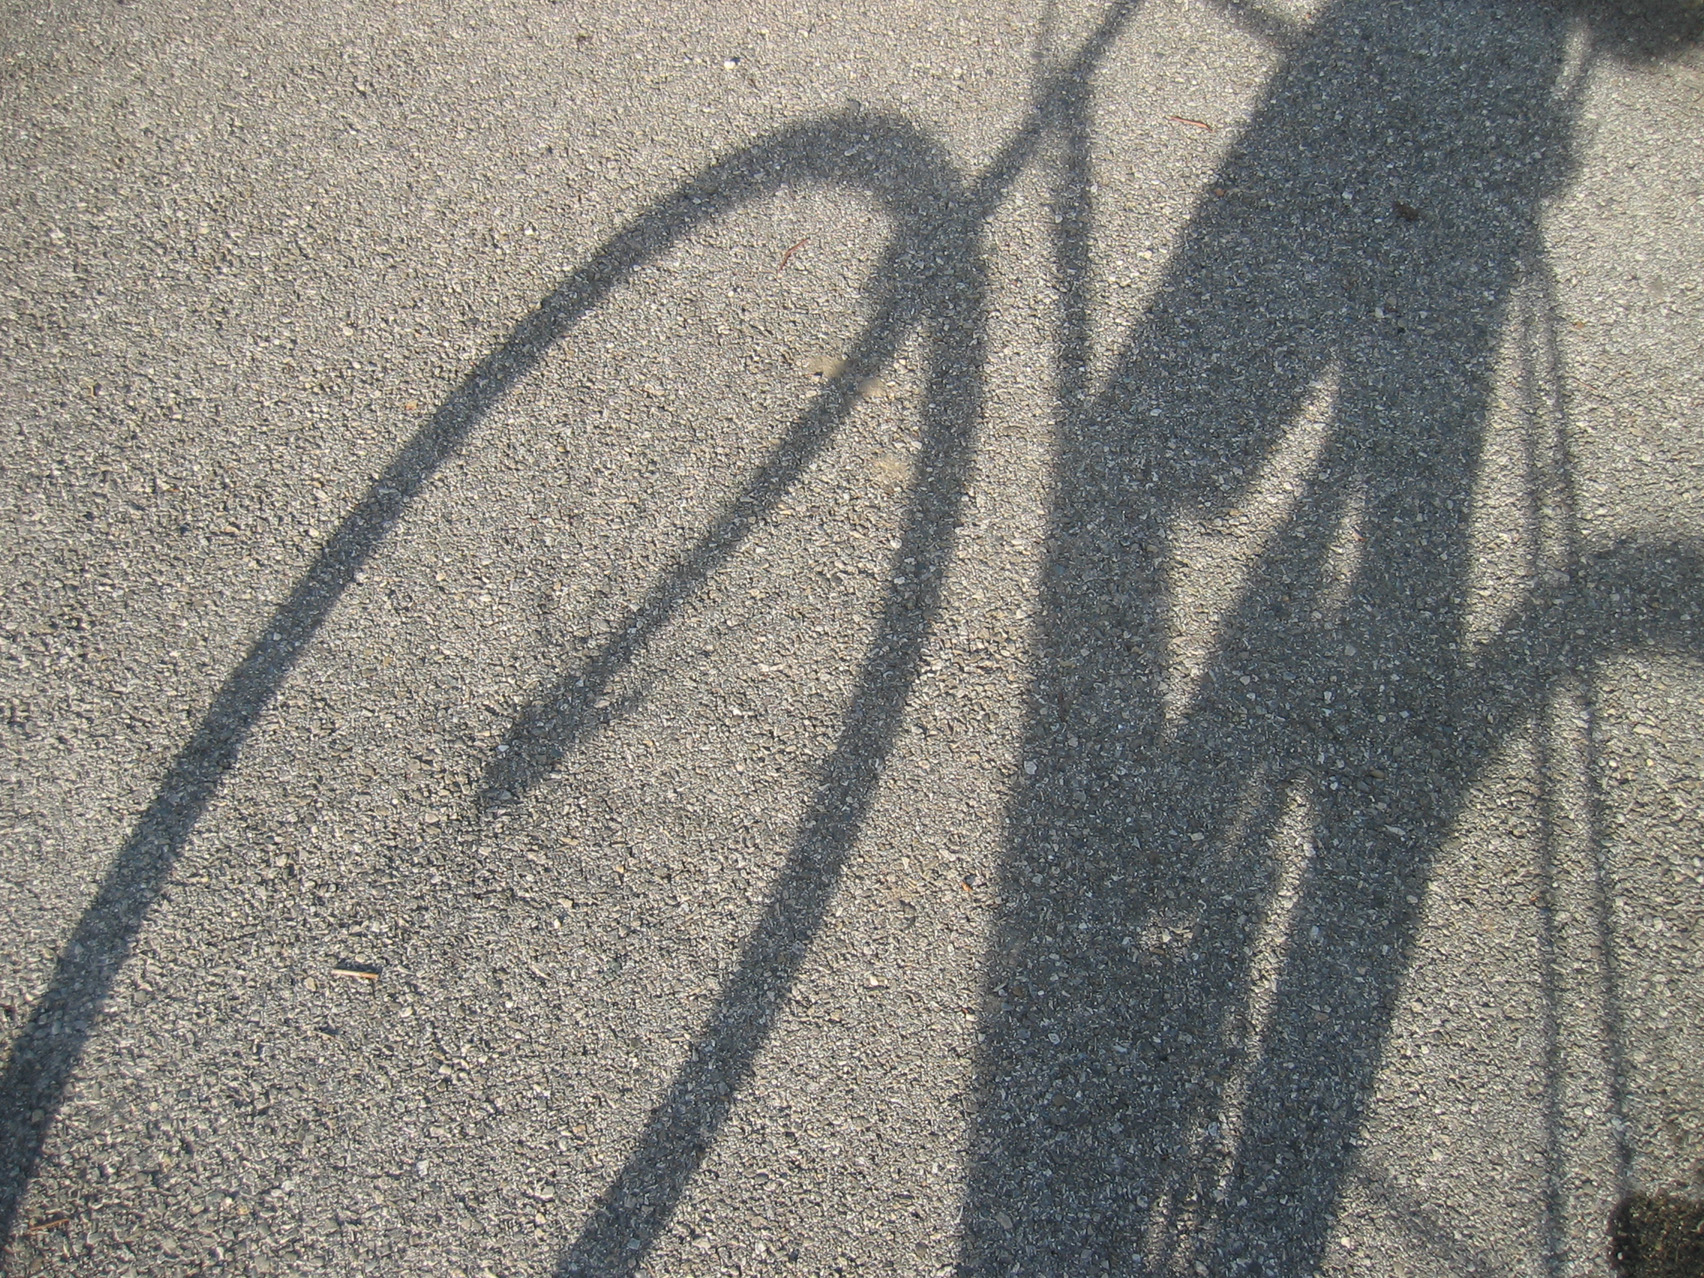 PEDAL POWER: Why groups cycle two-abreast